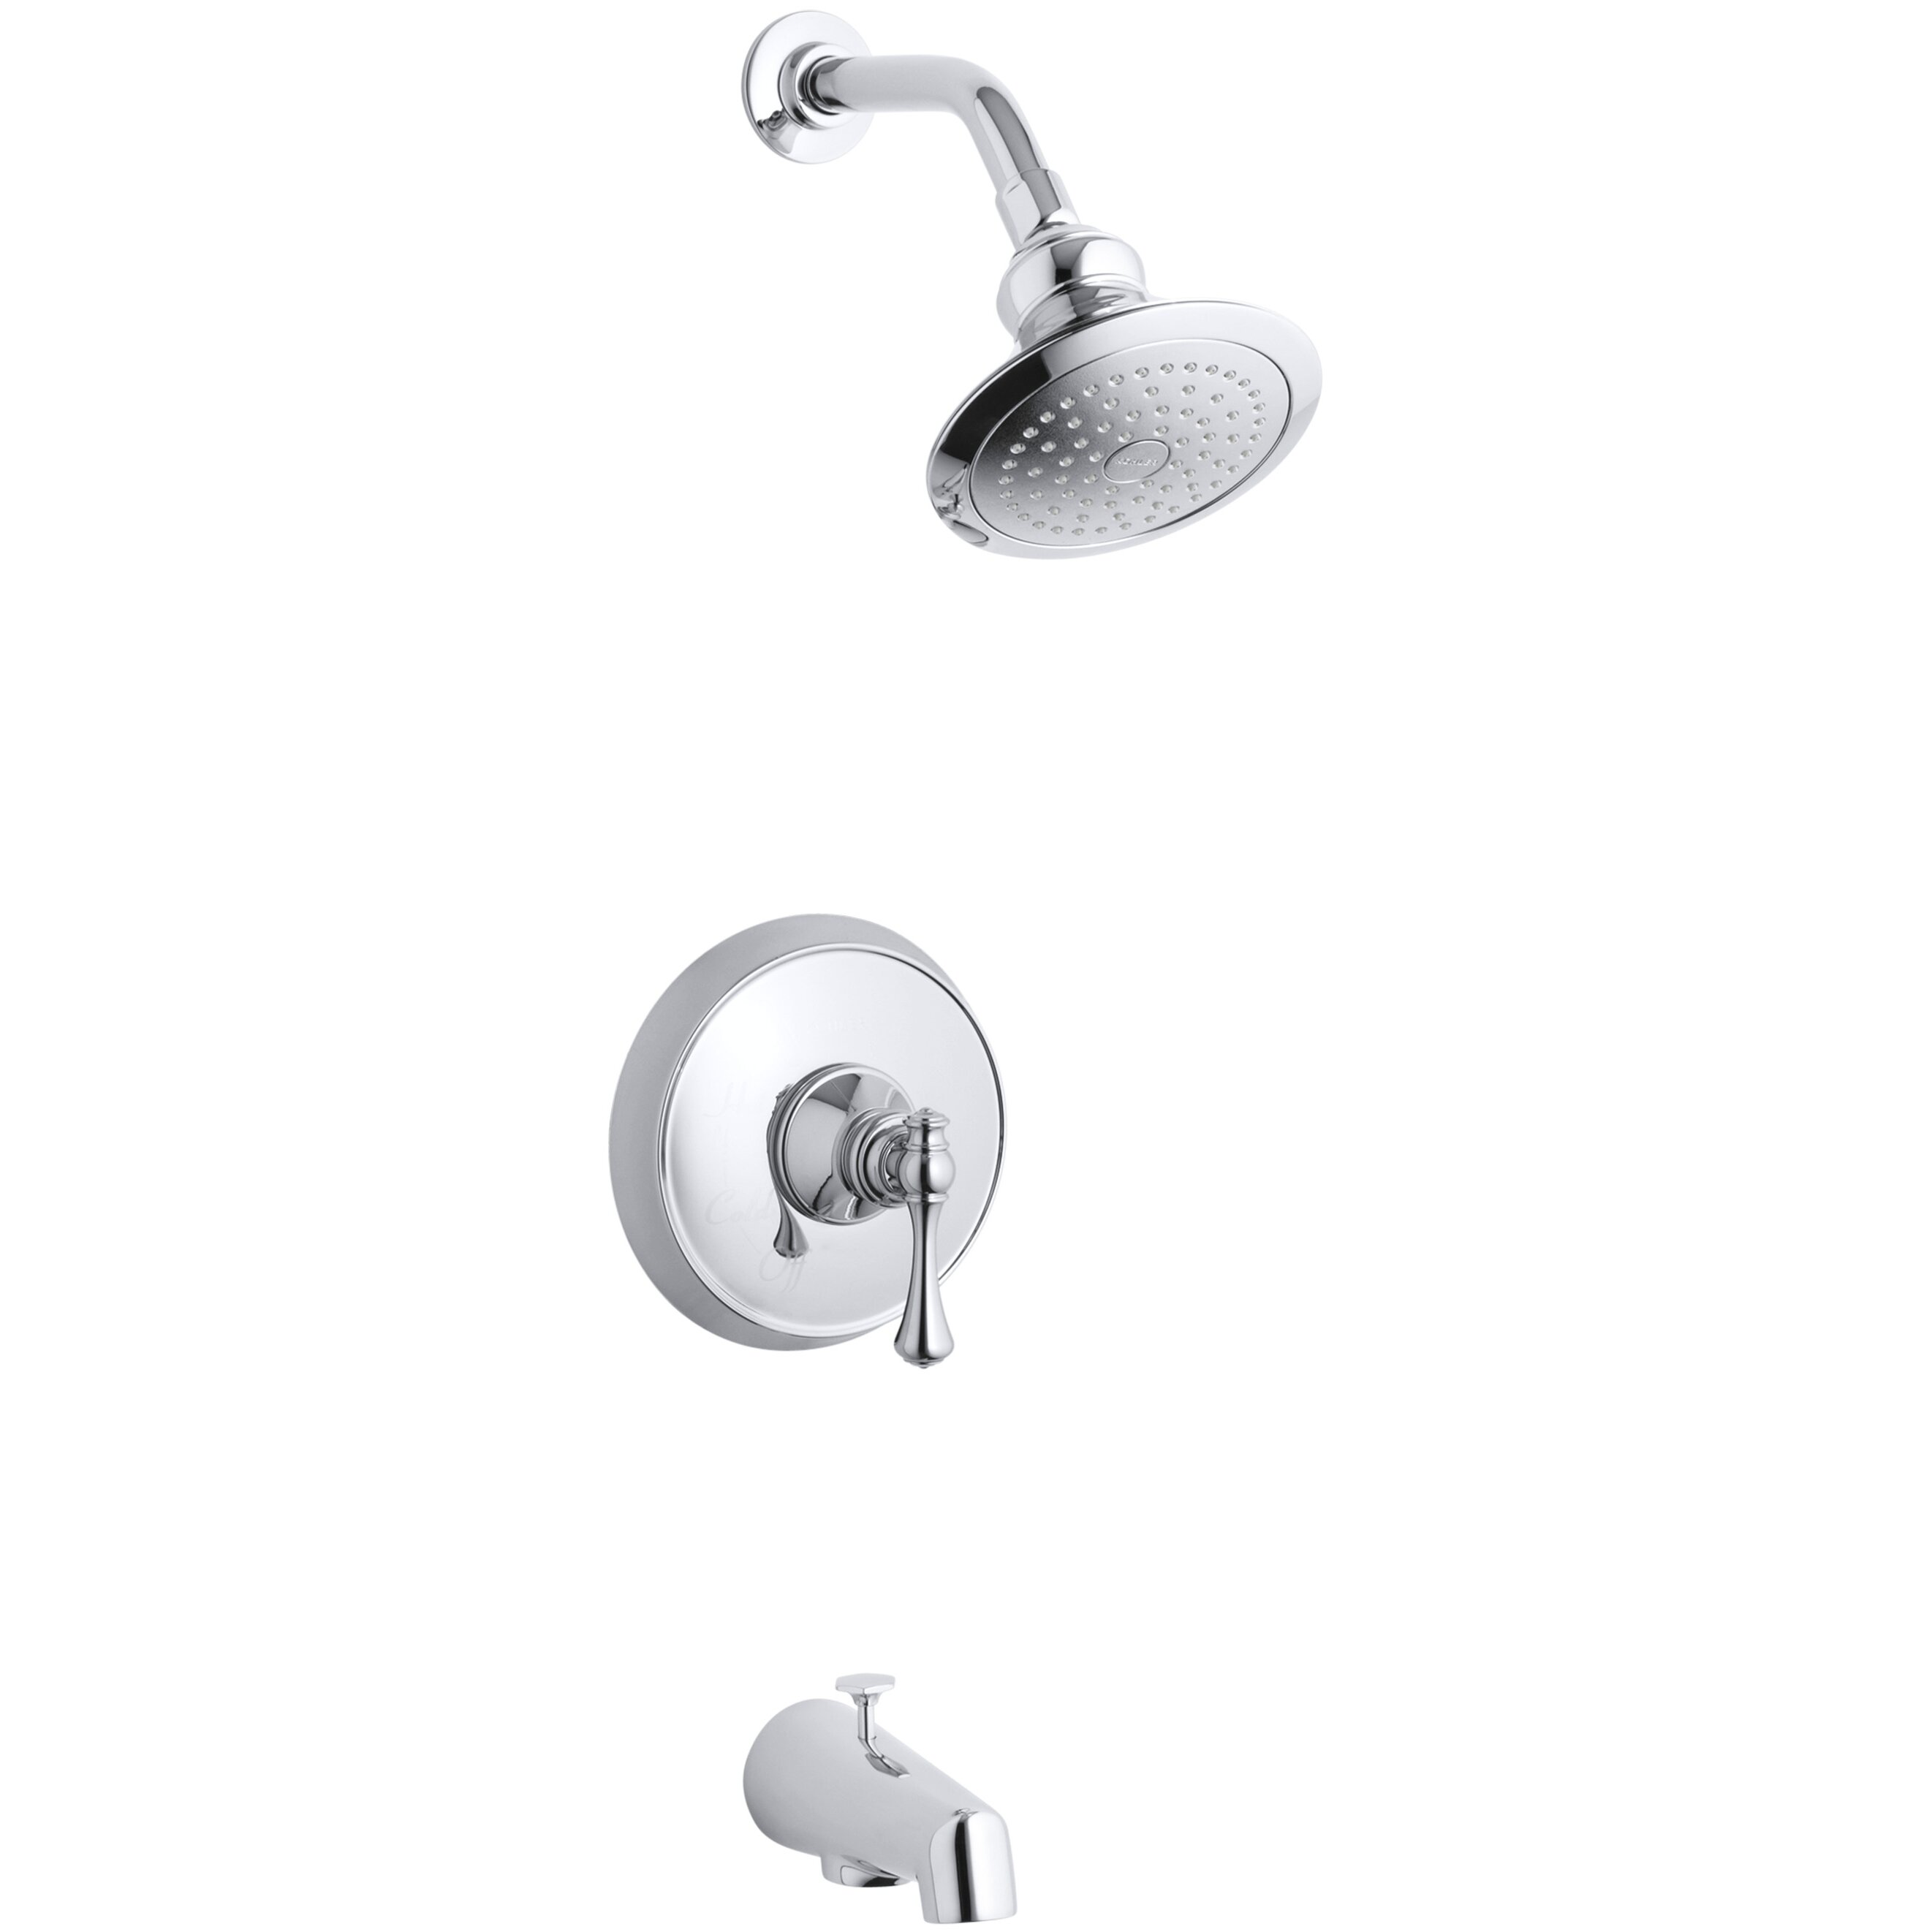 ... Bath and Shower Faucet Trim with Traditional Lever Handle by Kohler